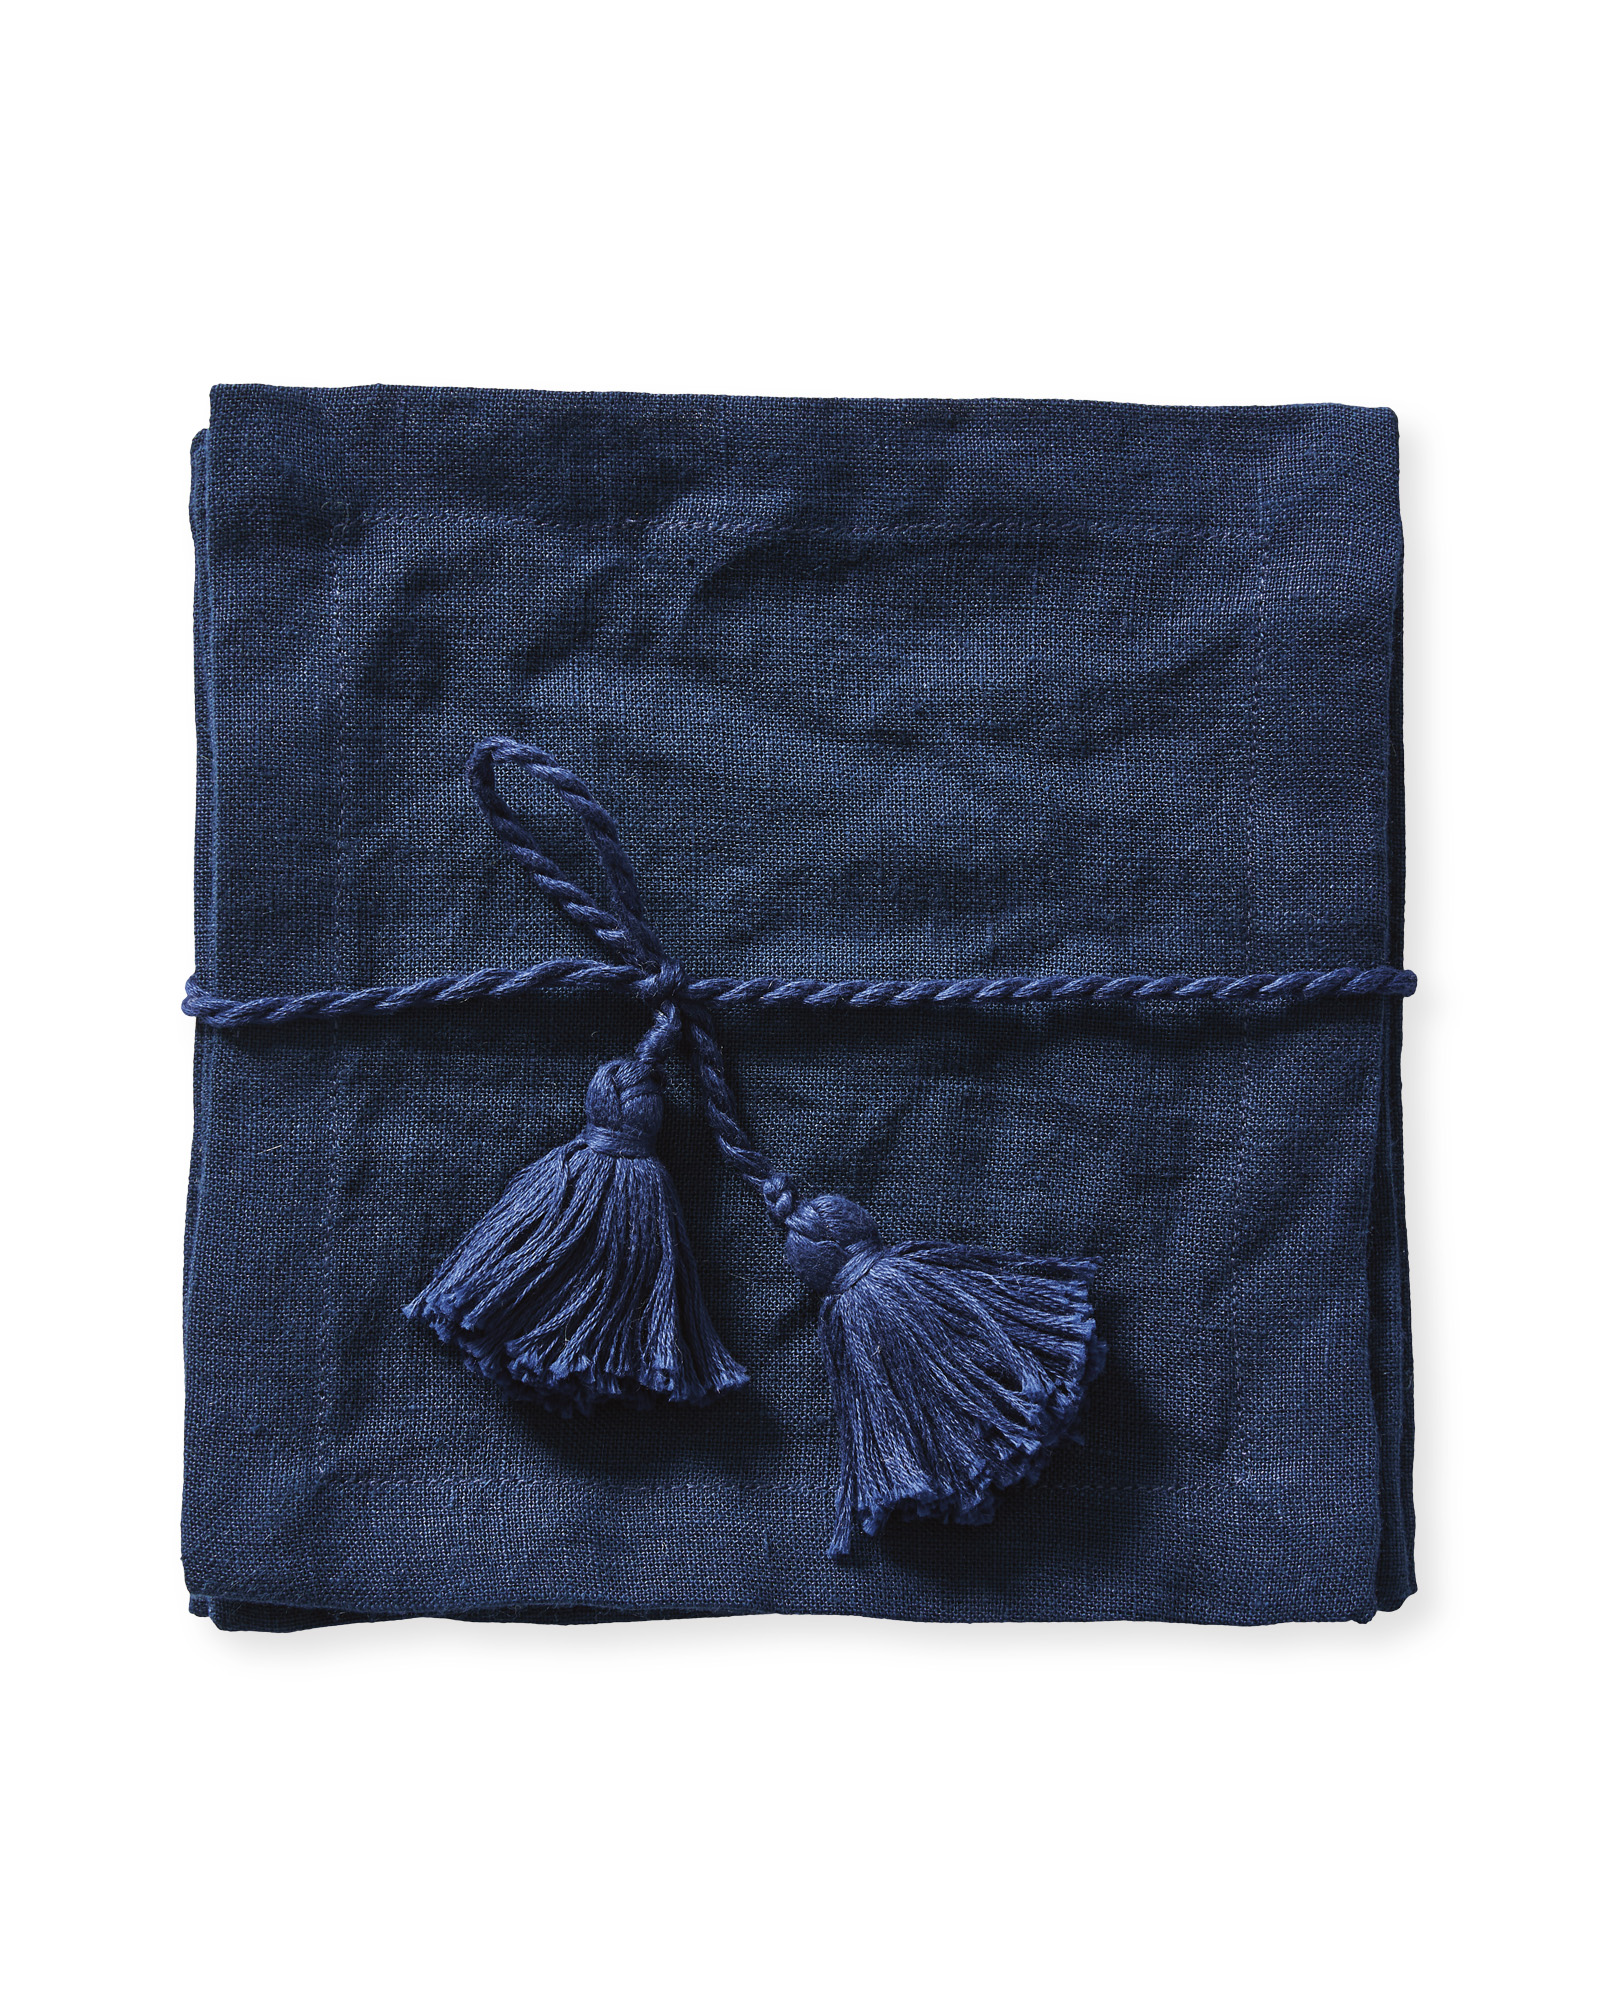 Salento Cocktail Napkins, Navy